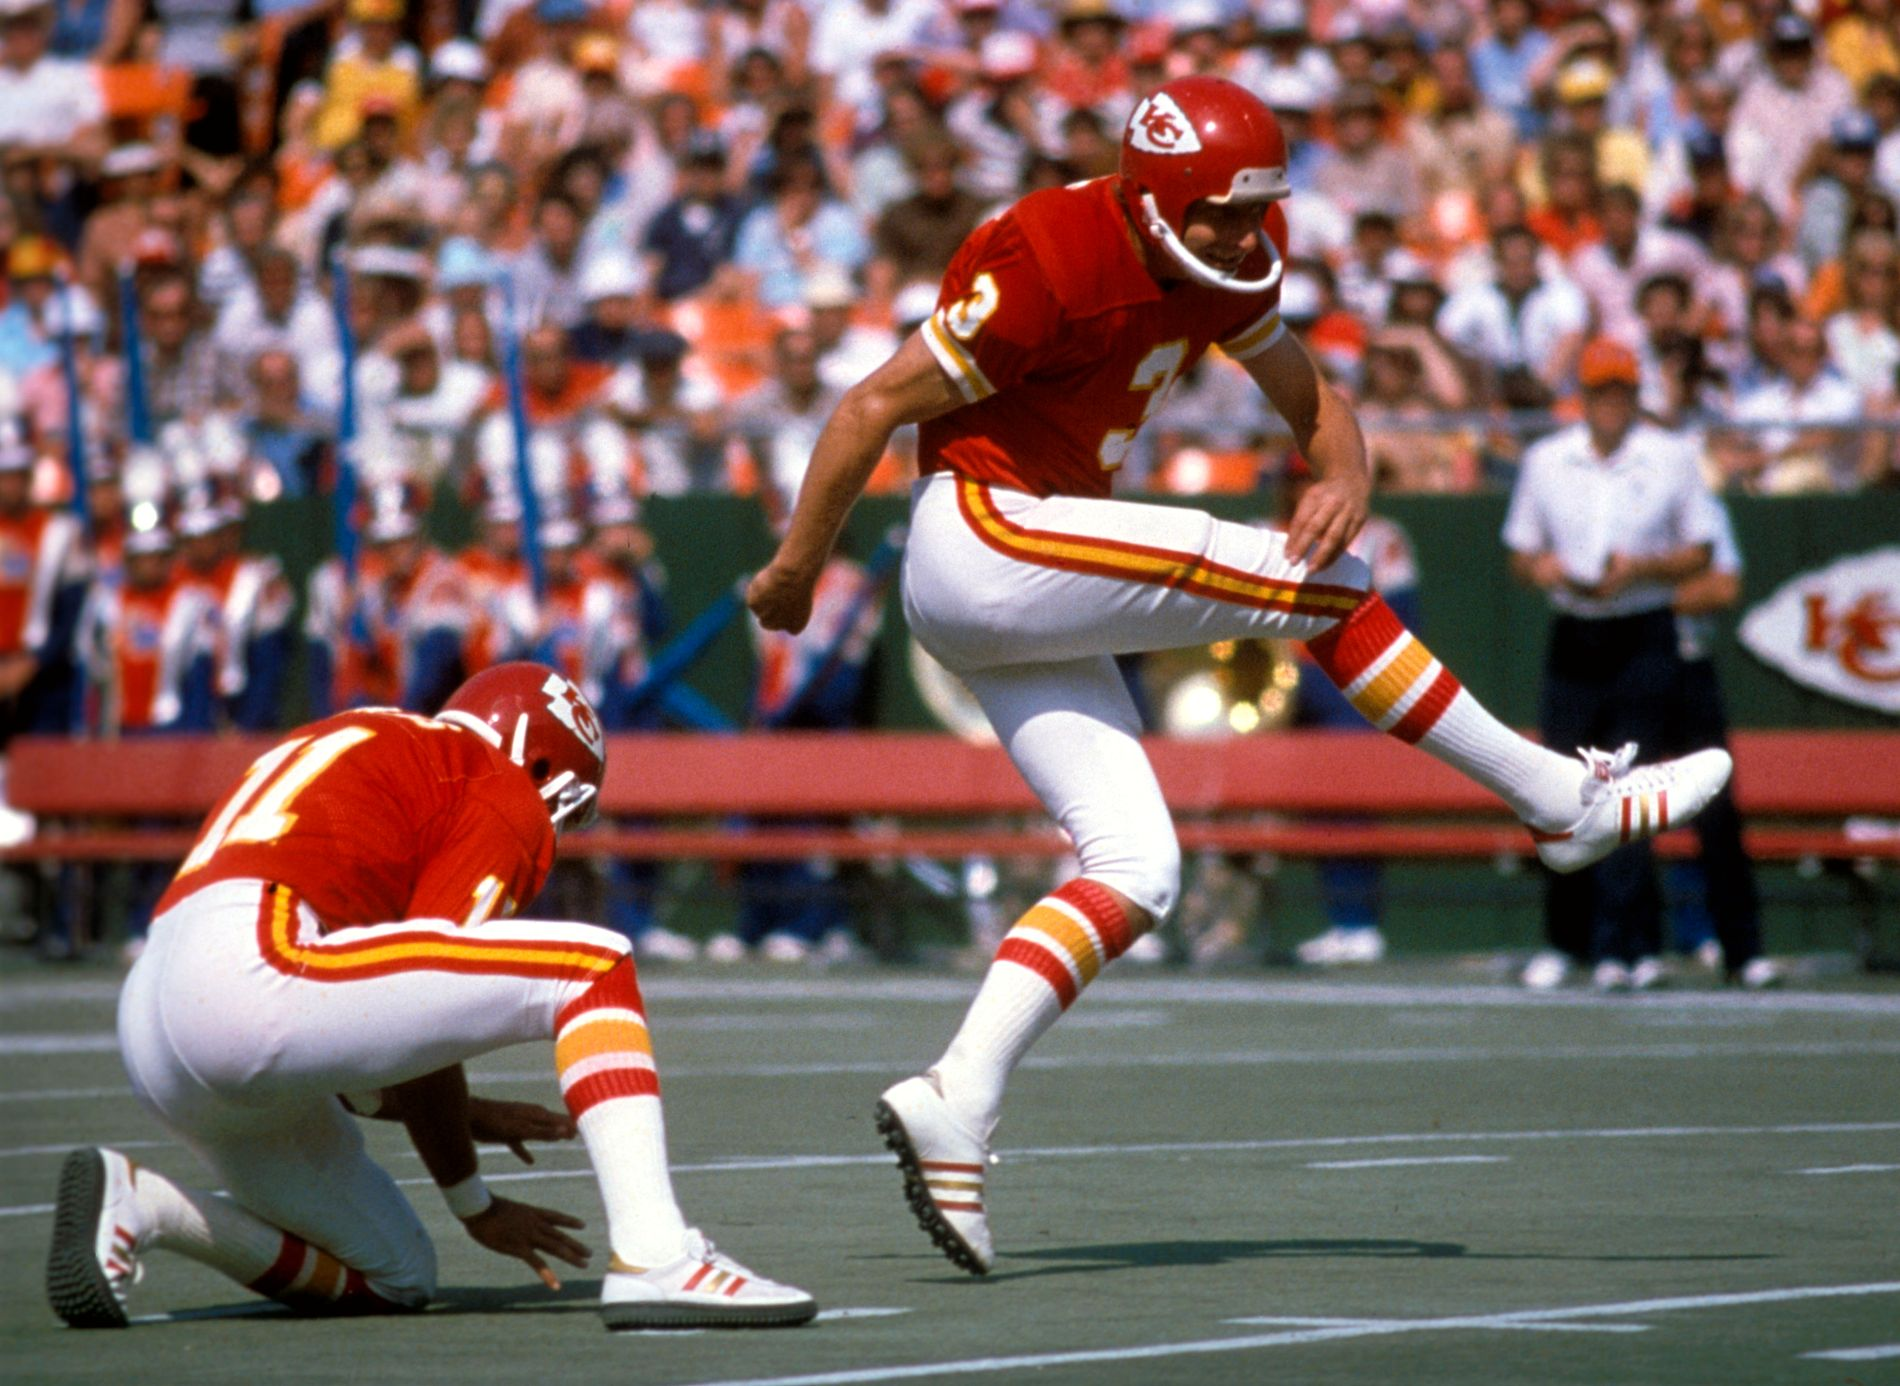 LEGENDE: Jan Stenerud sparket Kansas City Chiefs til Super Bowl-triumf - mot Minnesota Vikings - i 1970.